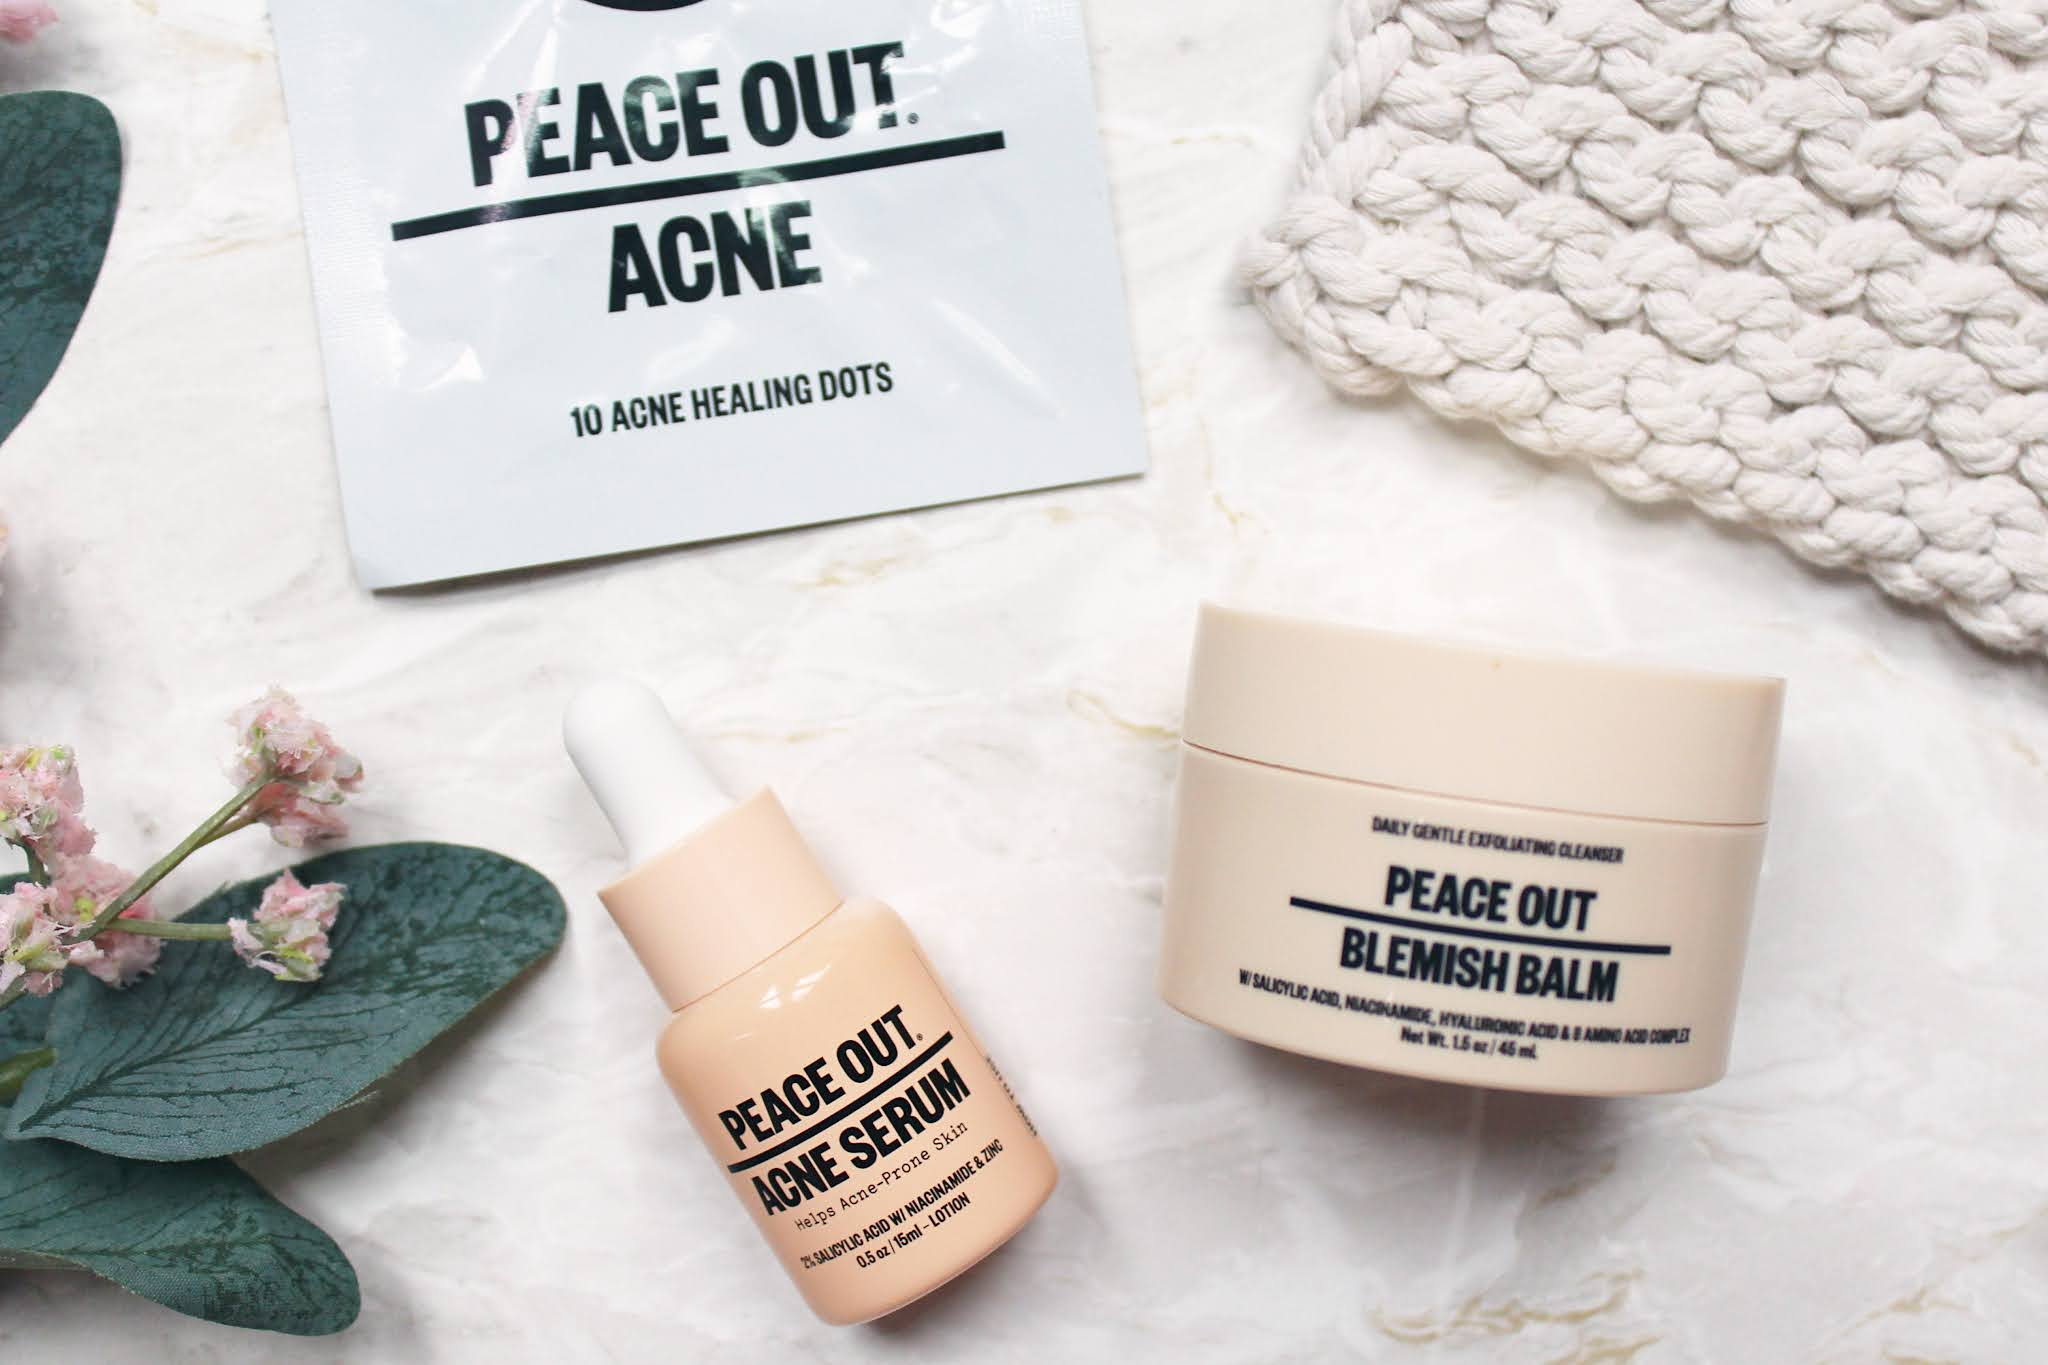 Peace Out Acne Champions Kit Review